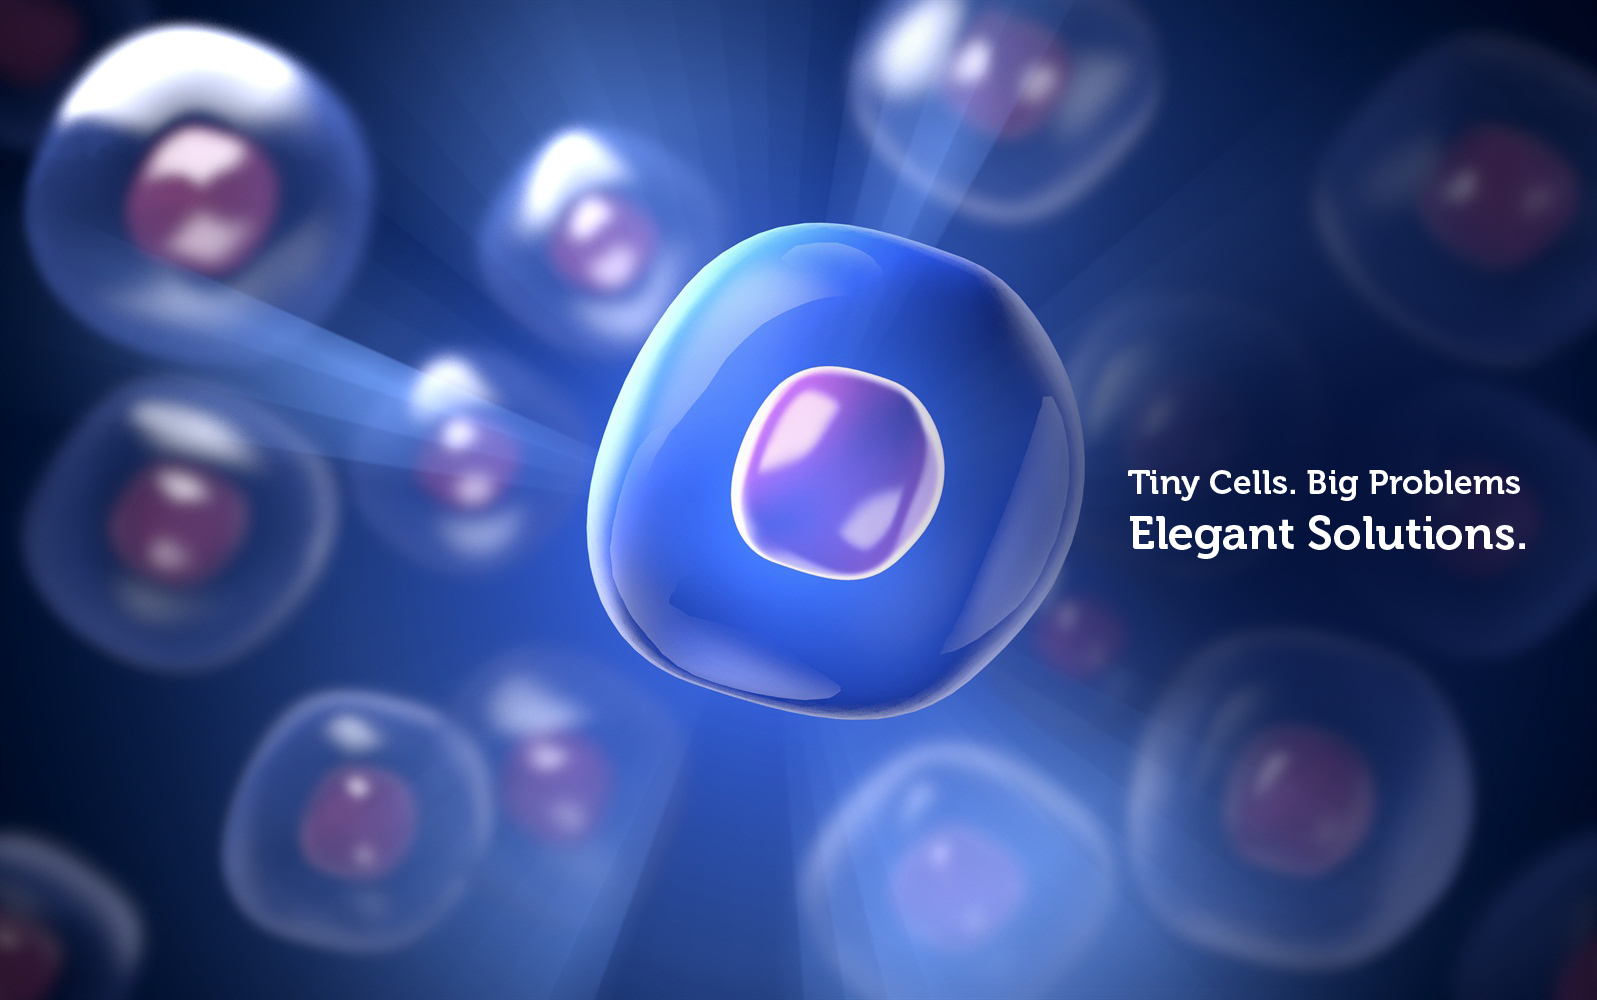 Tiny Cells Big Problems. Elegant Solutions.